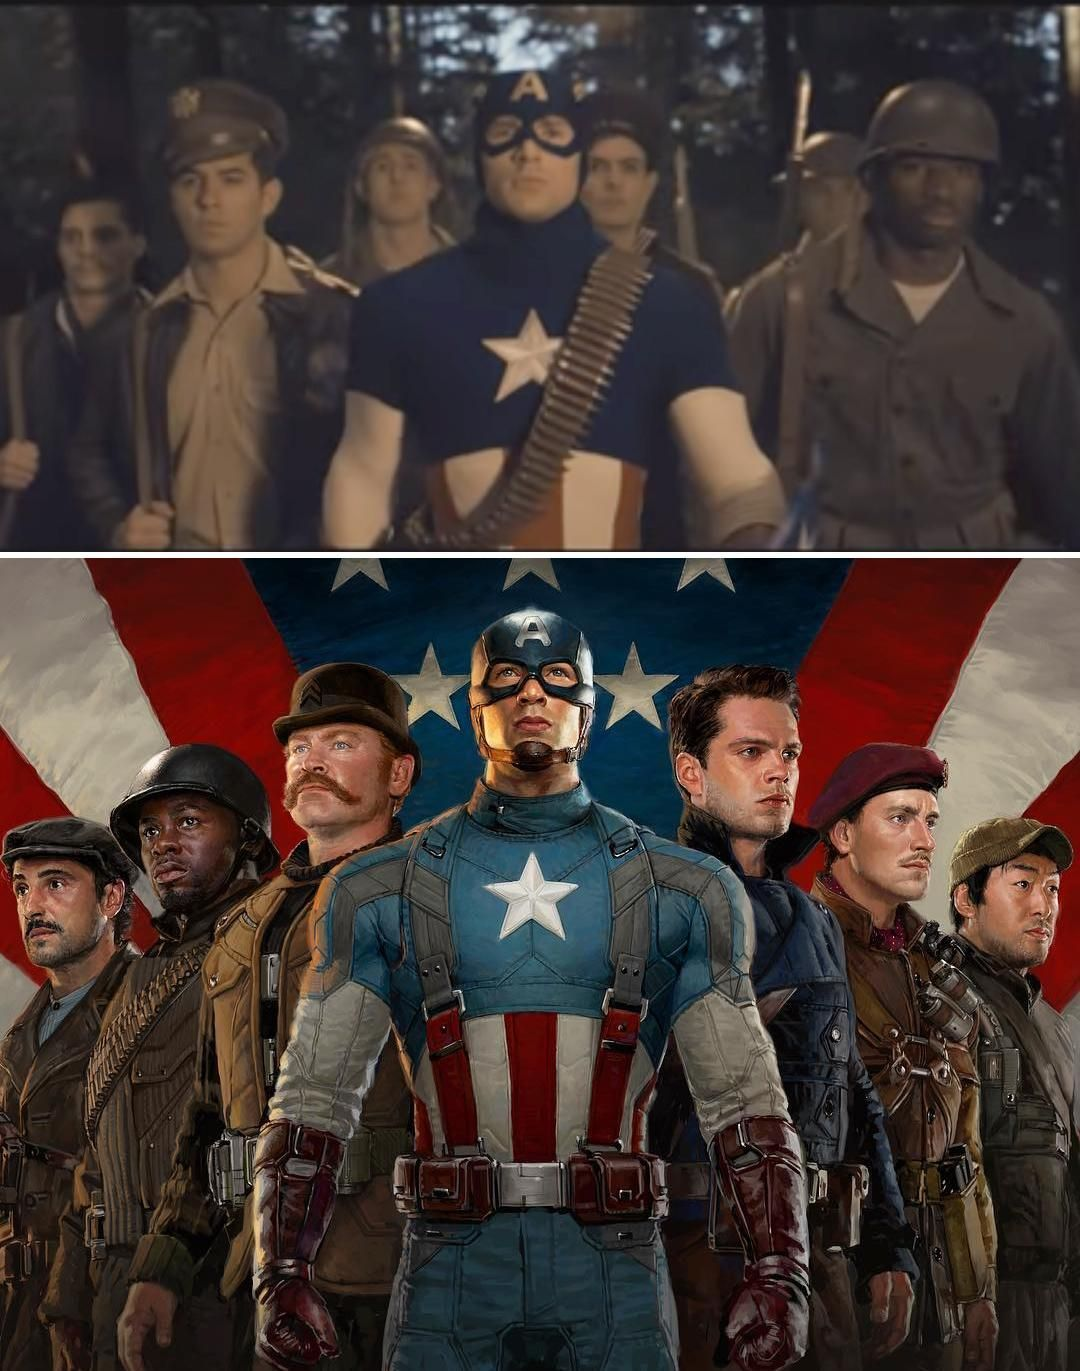 During The Star Spangled Man Musical Montage Cap Is Filming A Movie With Stand Ins Who Captain America Star Oh Captain My Captain Chris Evans Captain America